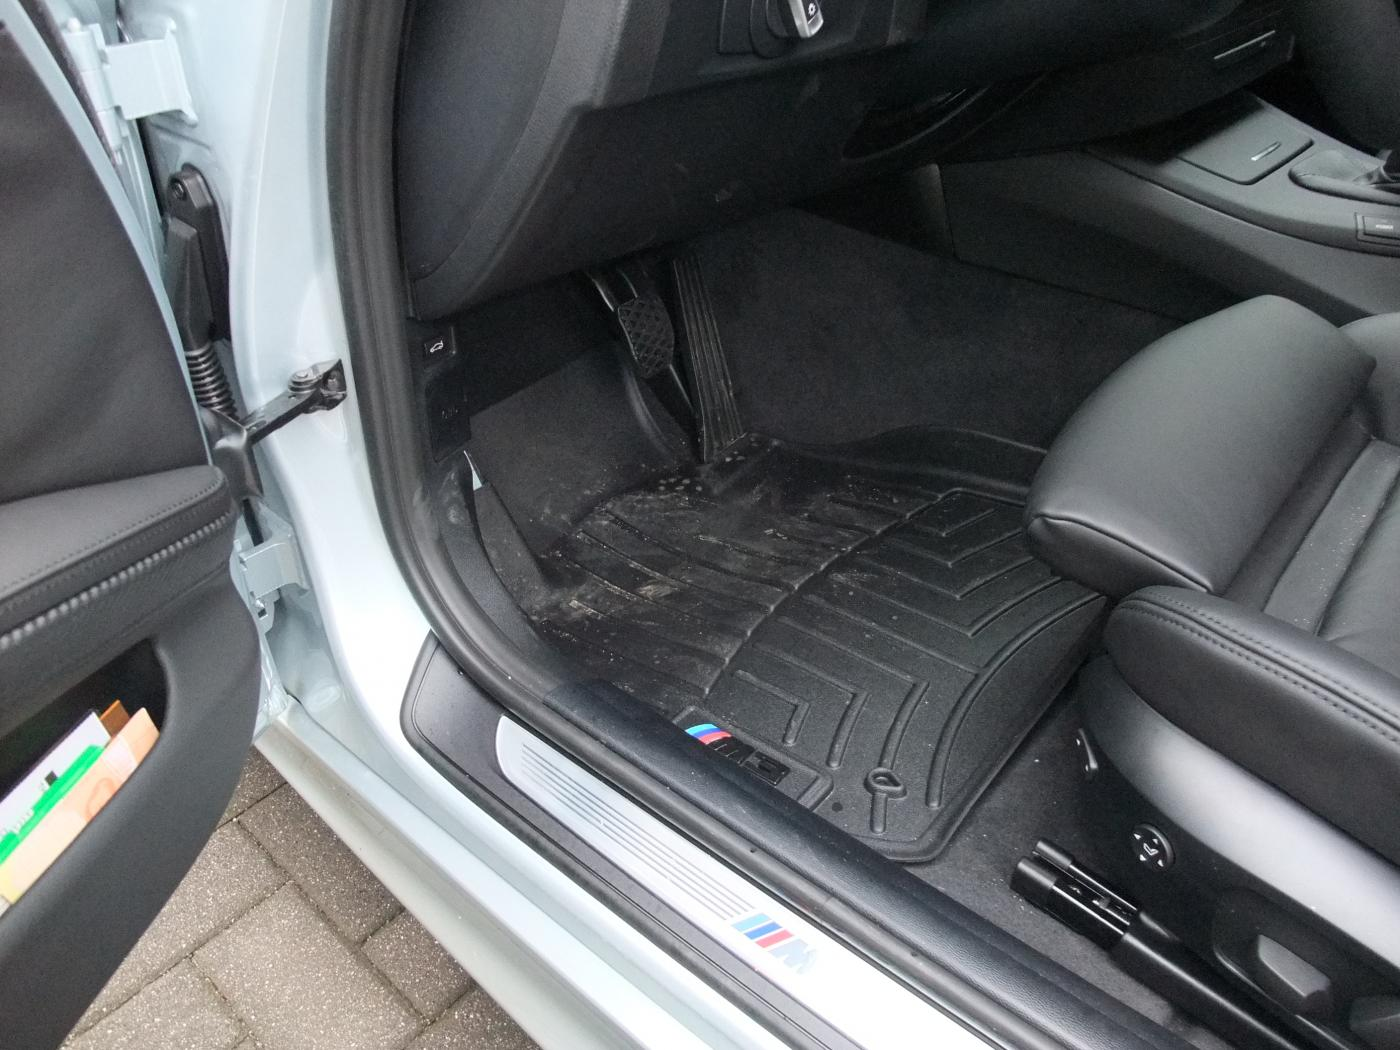 Weathertech mats ebay - Here S How They Look In My Car With The Weathertech Logos Peeled Off And Replaced With M3 Logos From Ebay 13 Each